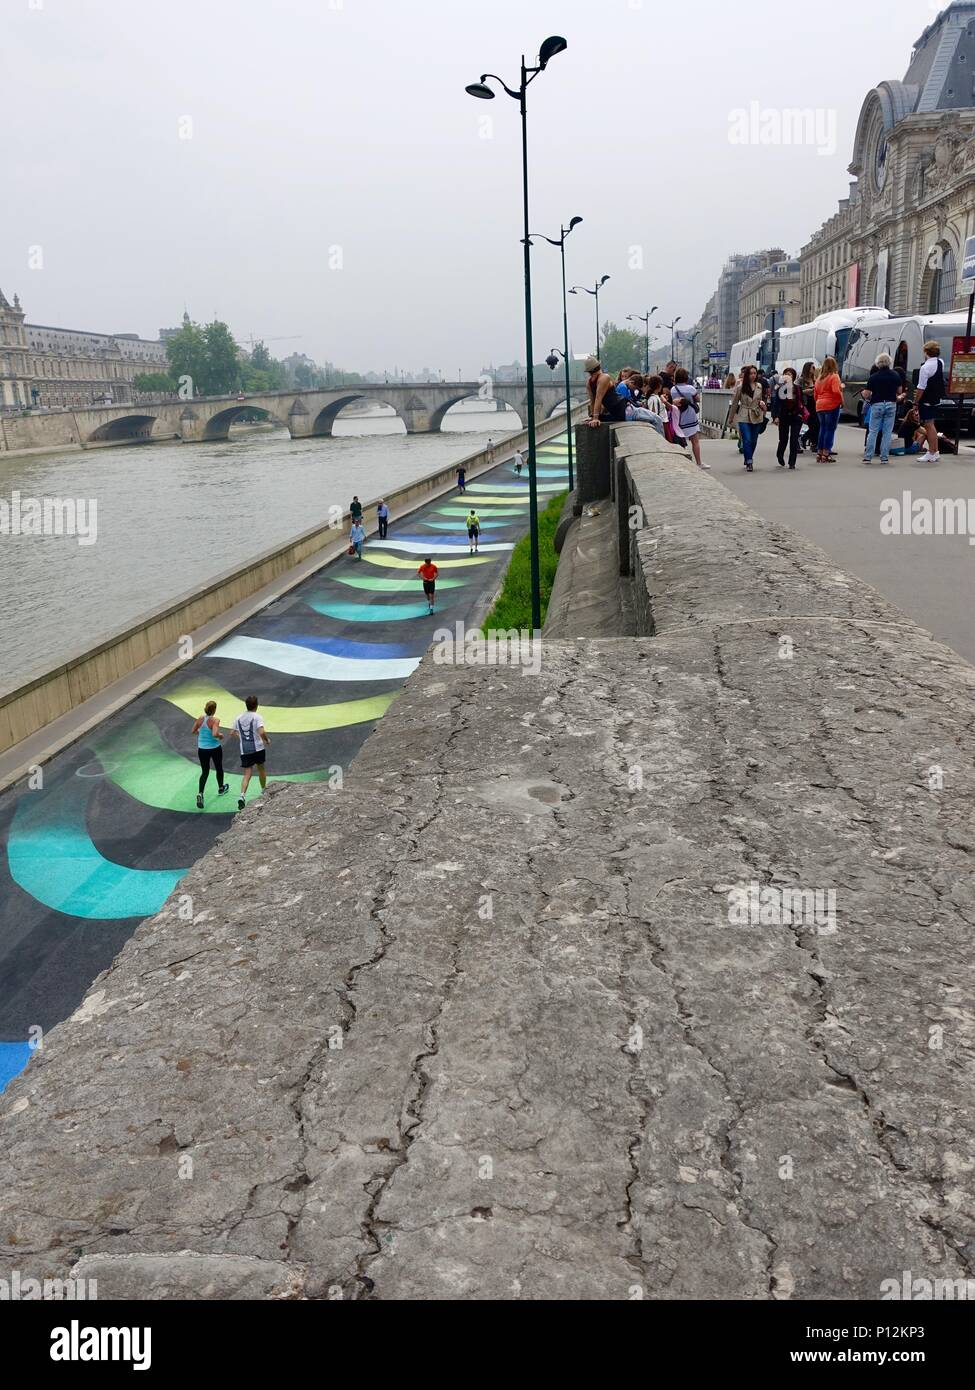 Runners cross an art display painted on the ramp leading down to the Berges de Seine on the  left bank, Paris, France - Stock Image